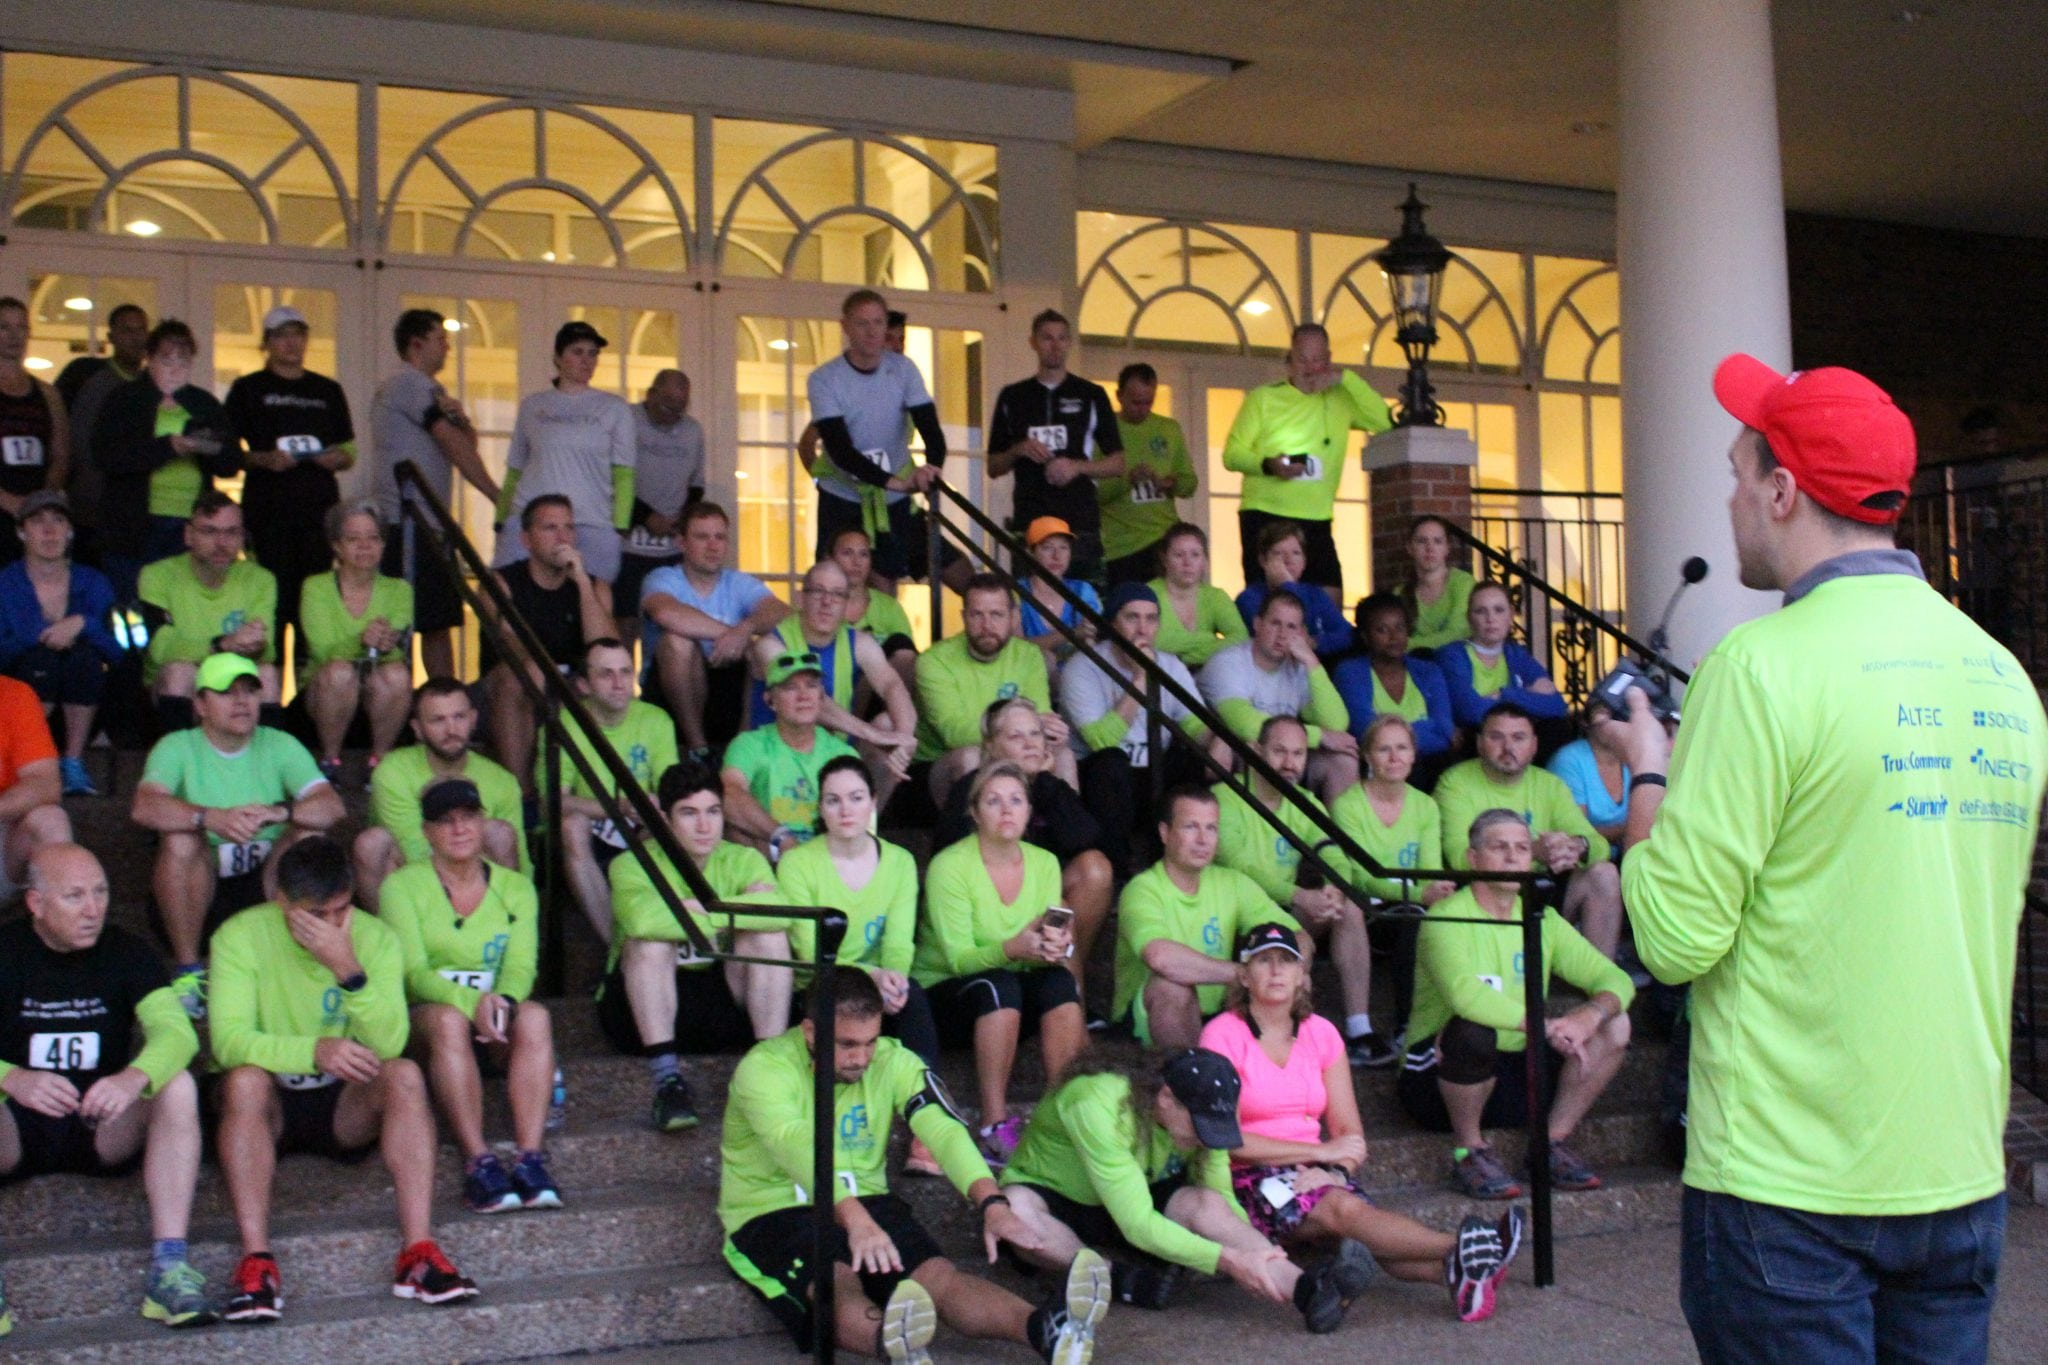 2017 deFacto 5k: Run to End Hunger   deFacto Global Inc